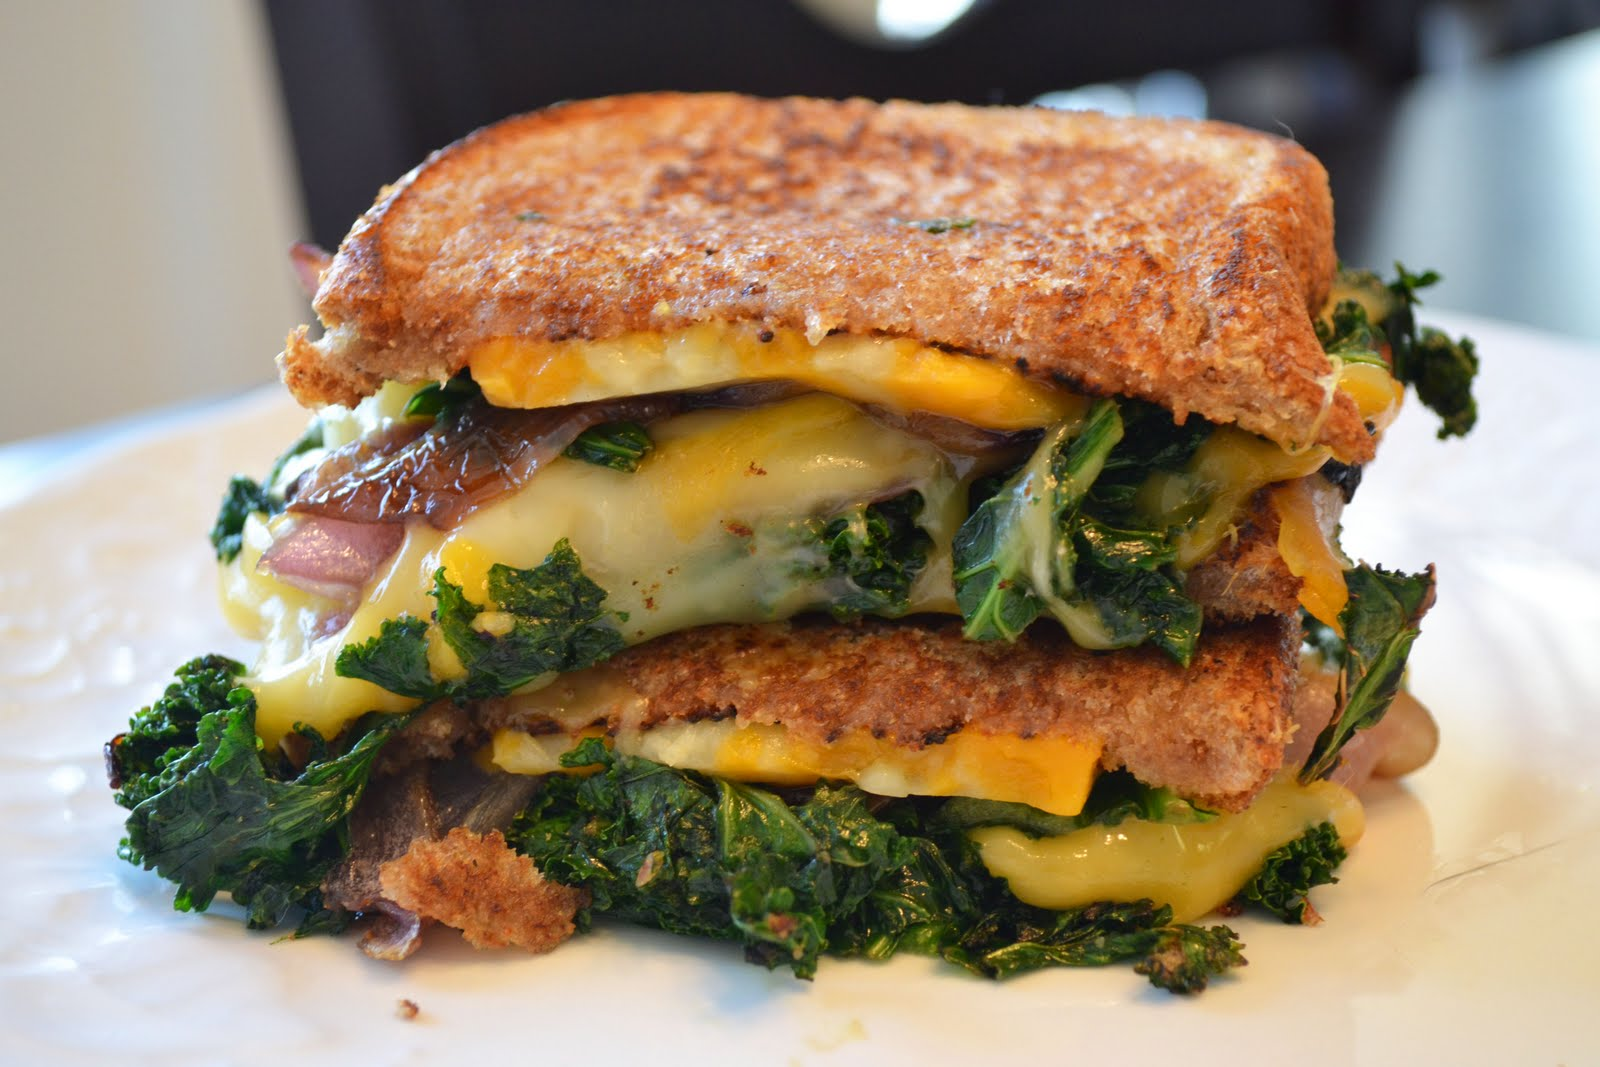 Grilled Cheese with Kale and Caramelized Onions